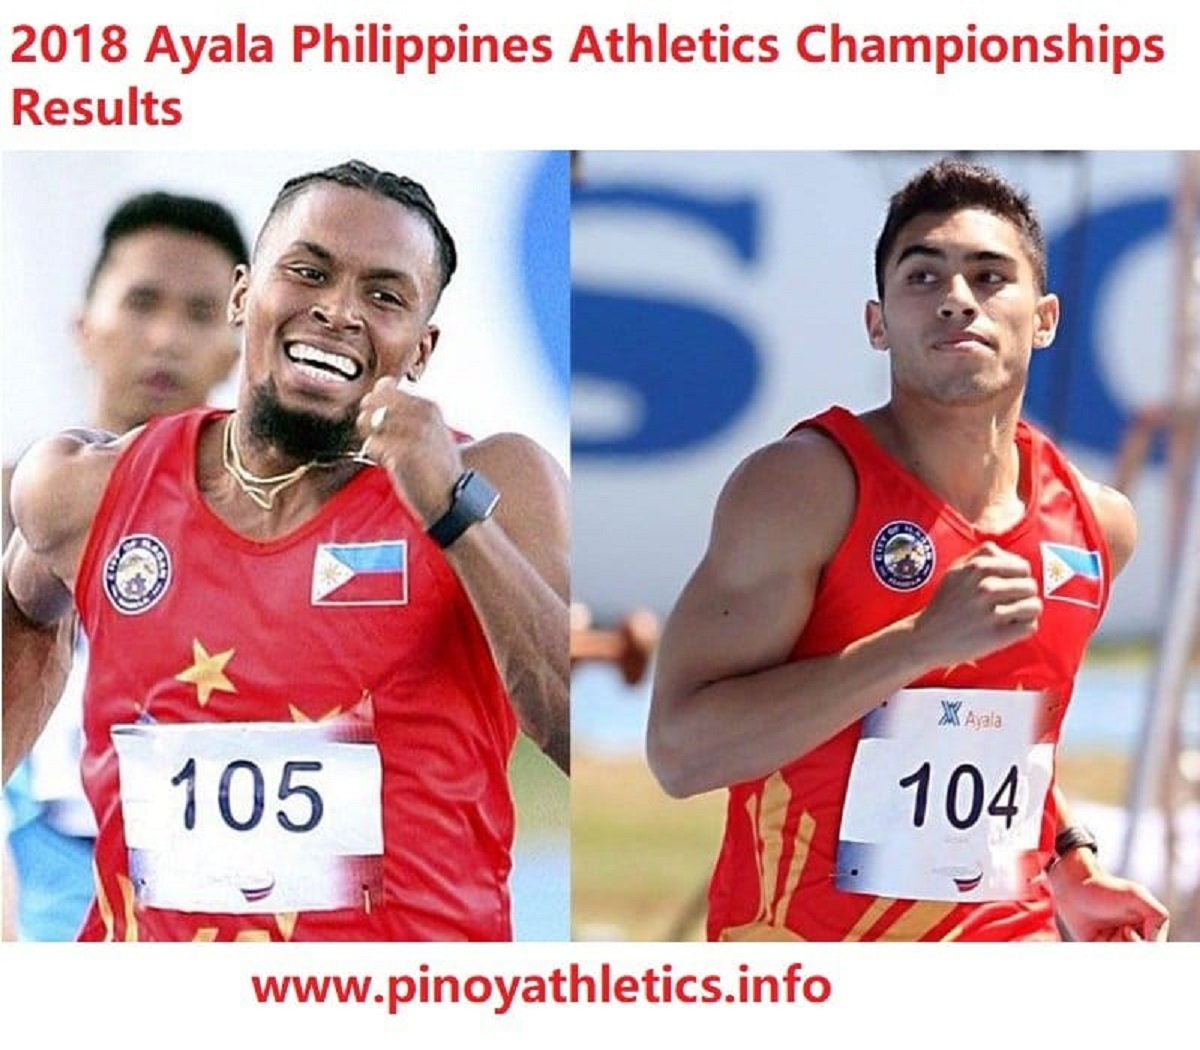 2018 Ayala Philippines National Open Athleics Results 18